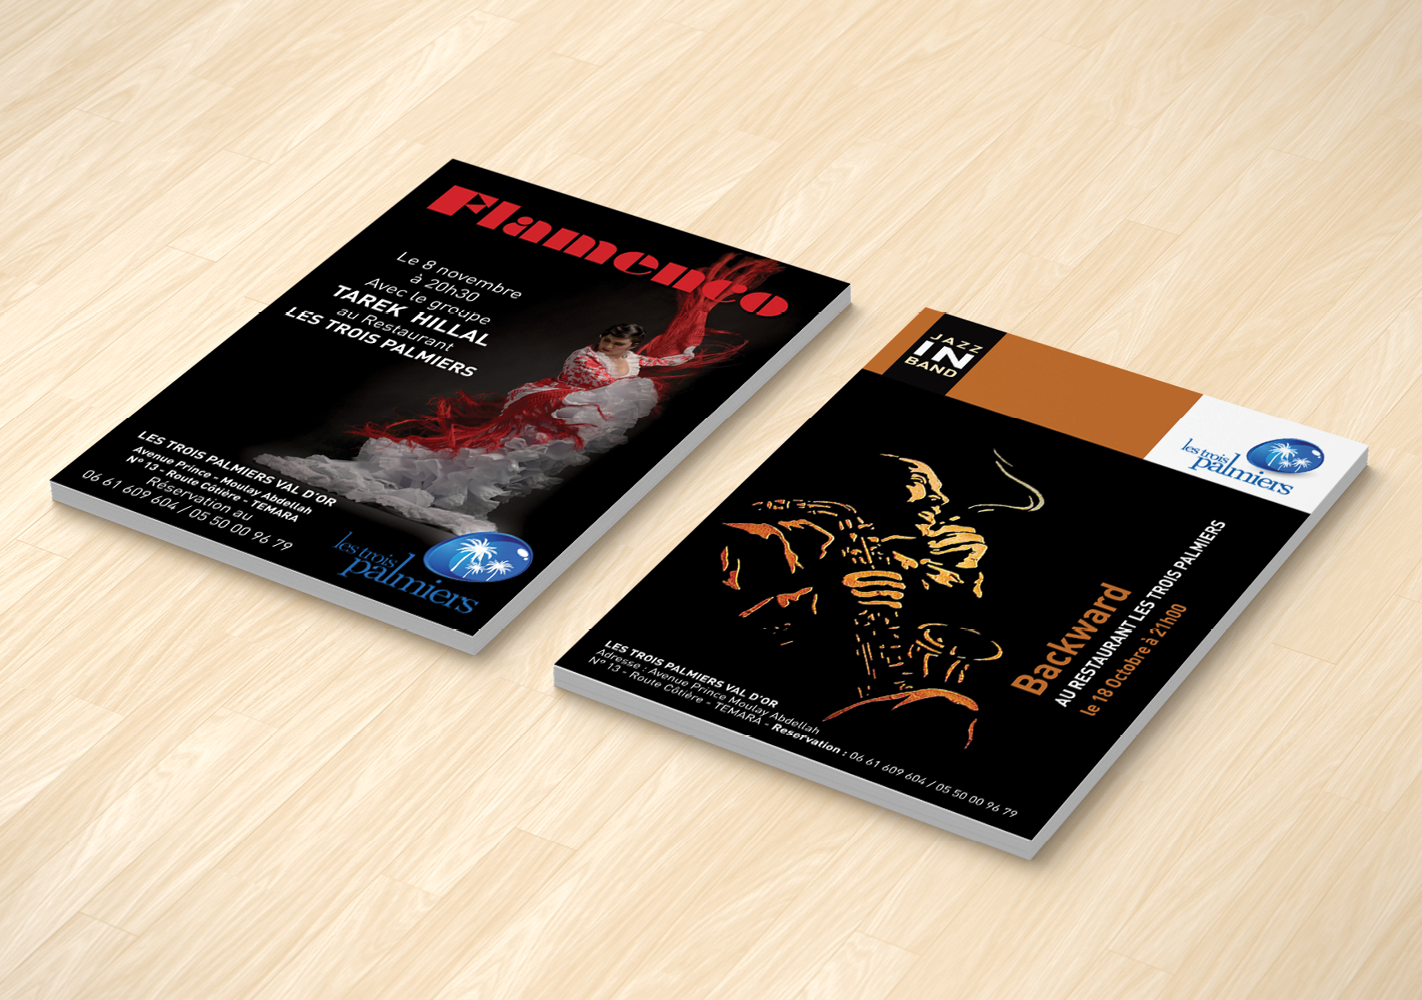 #Flyers : Conception, exécution et impression #Flyers : Design, execution and printing